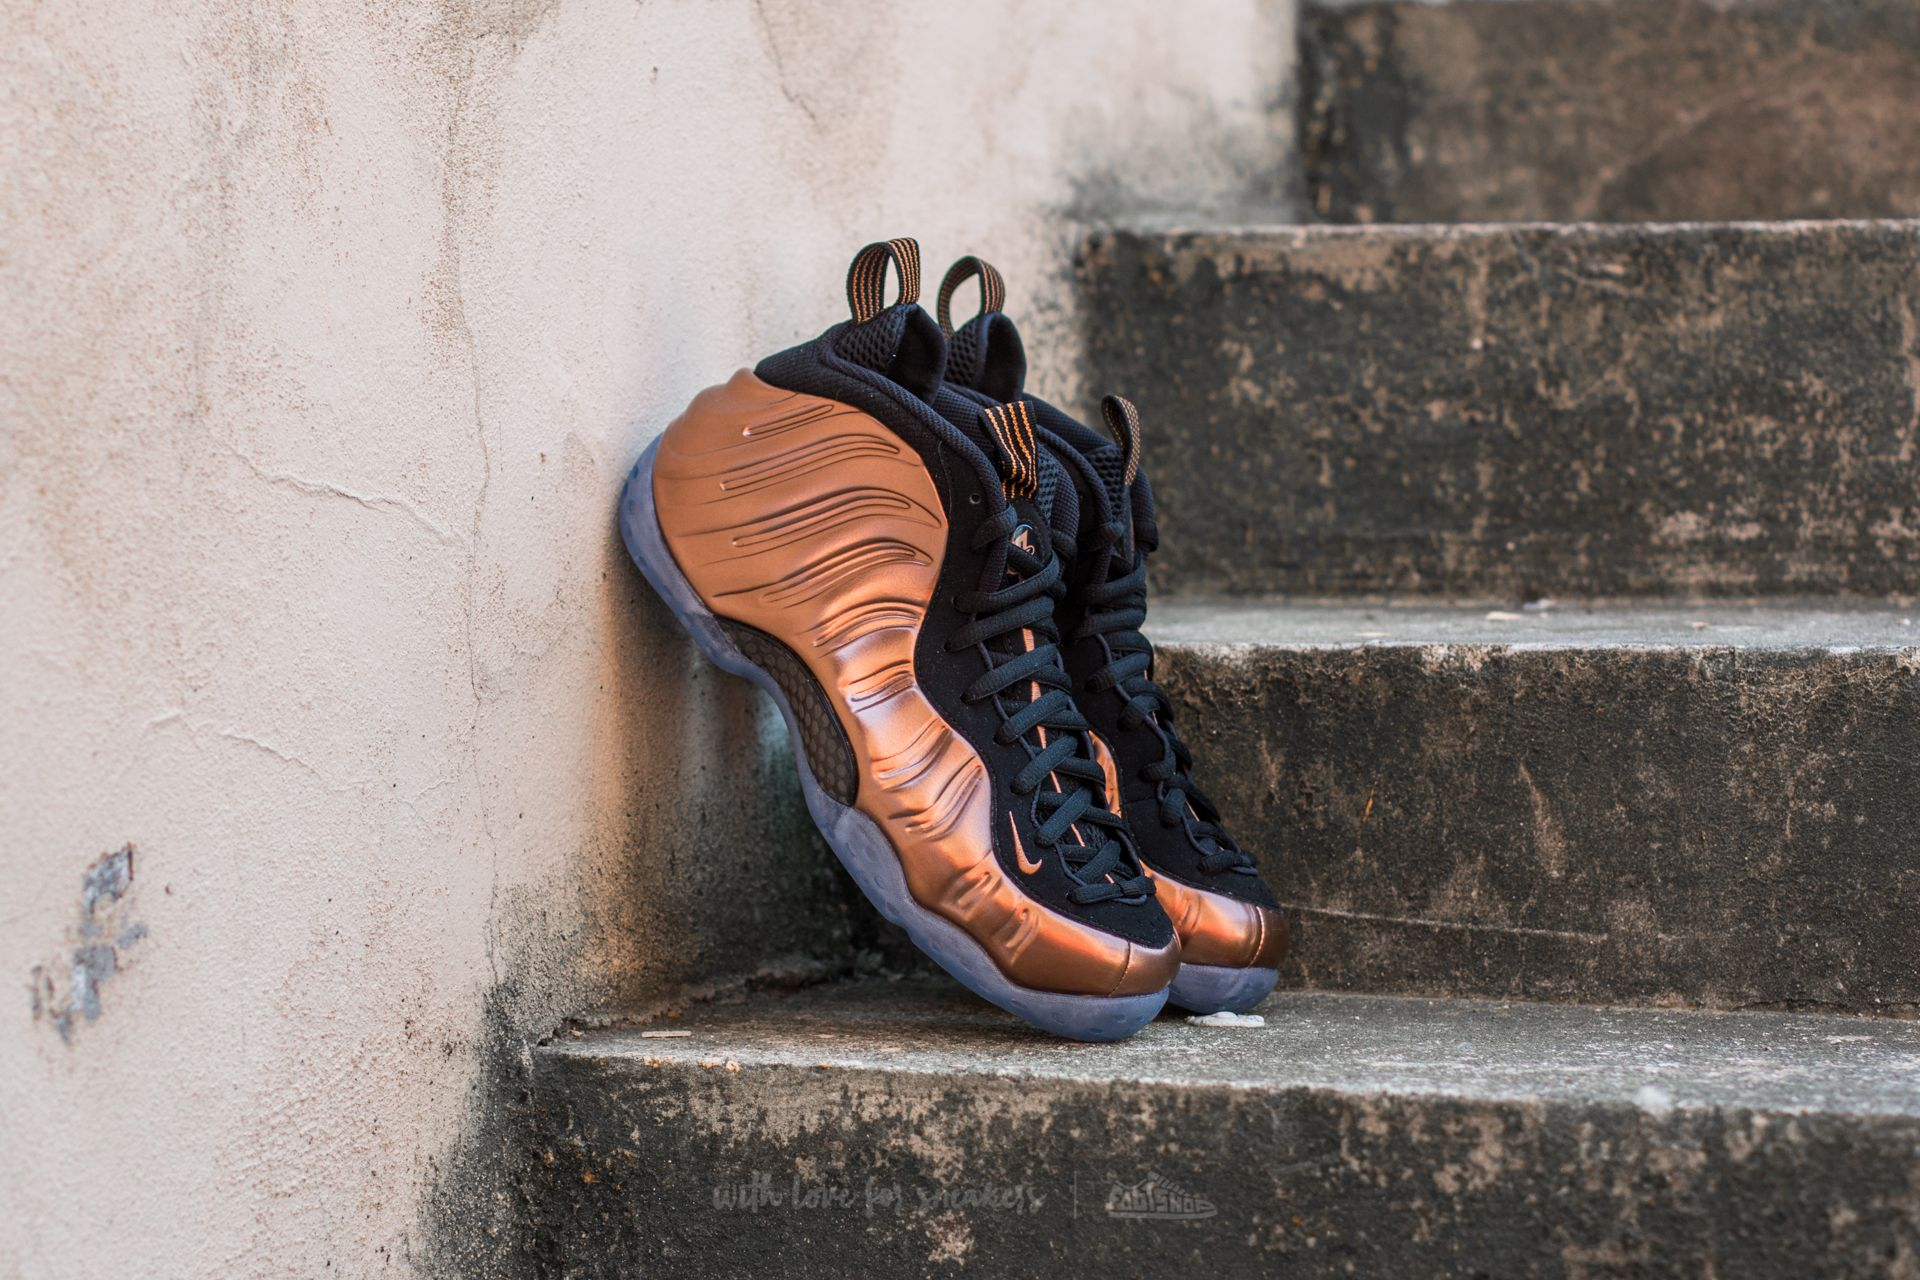 ShortyC94 Quick Review On The 2017 Nike Air Foamposite One